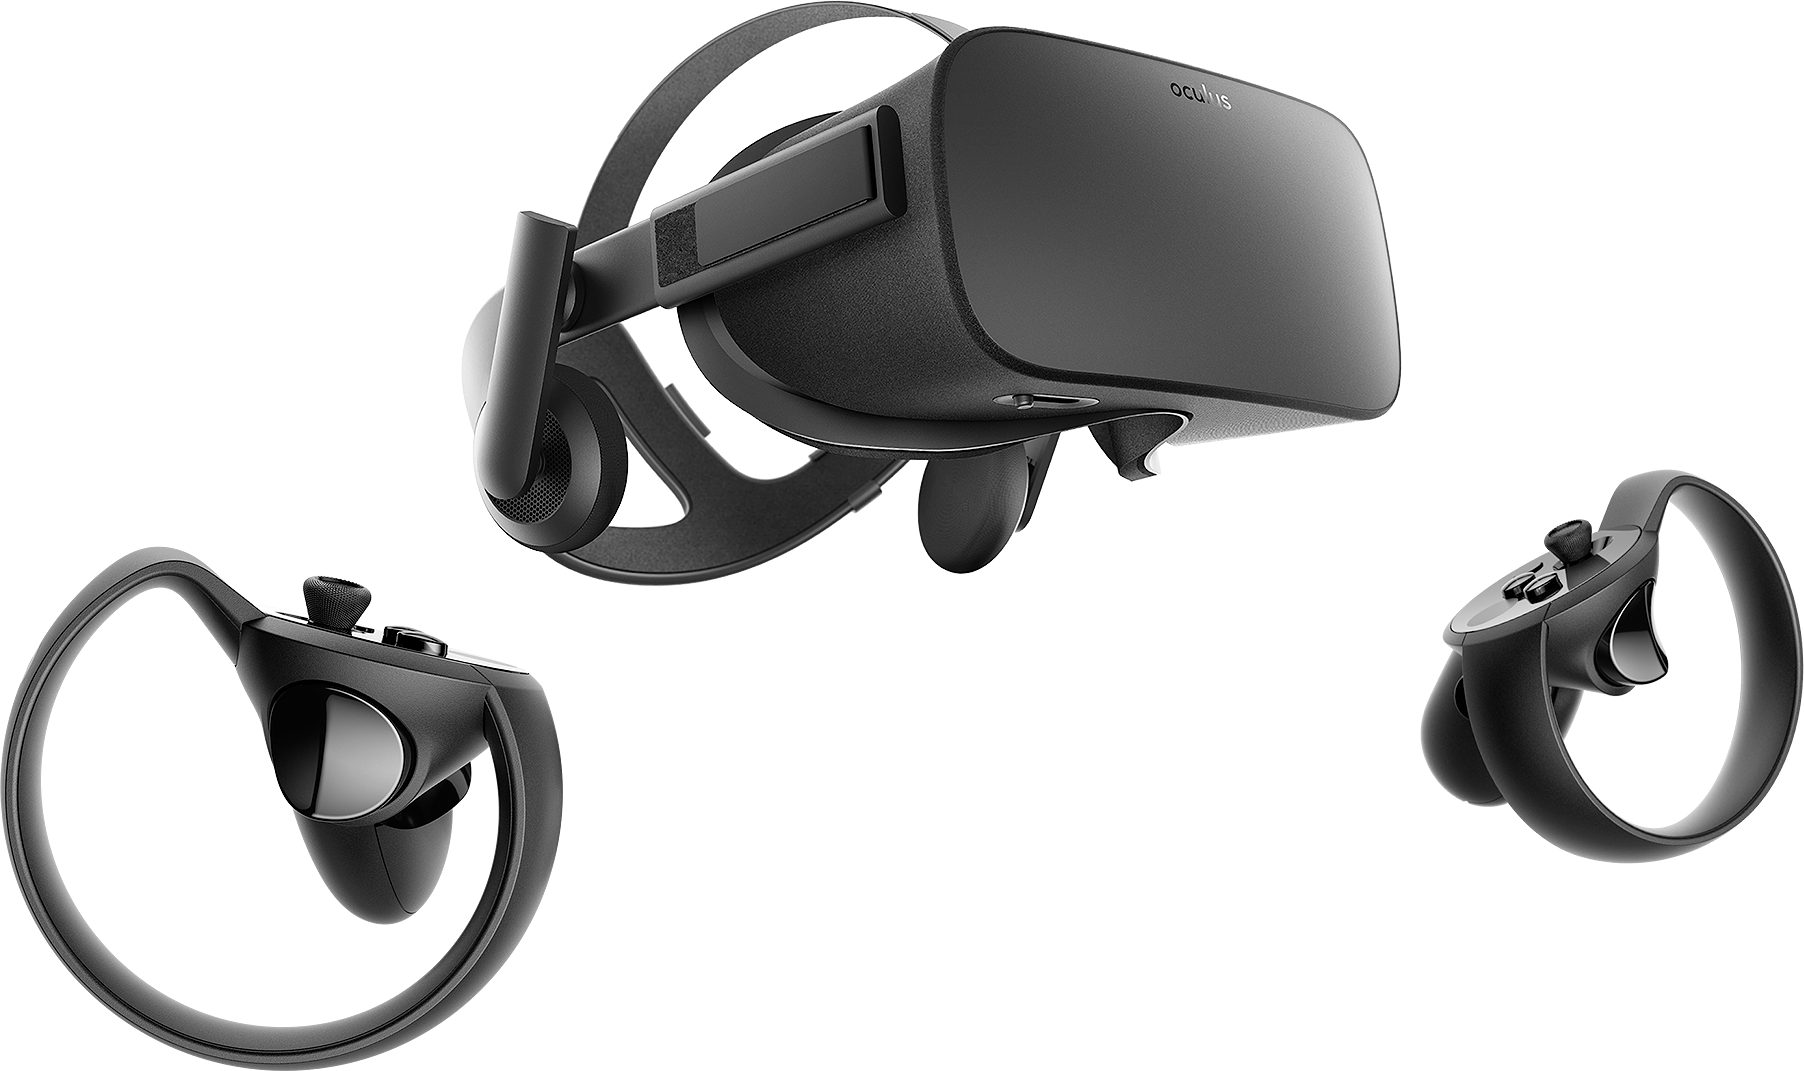 Oculus rift vr clipart vector download Oculus Rift Virtual reality headset HTC Vive Oculus VR - VR headset ... vector download